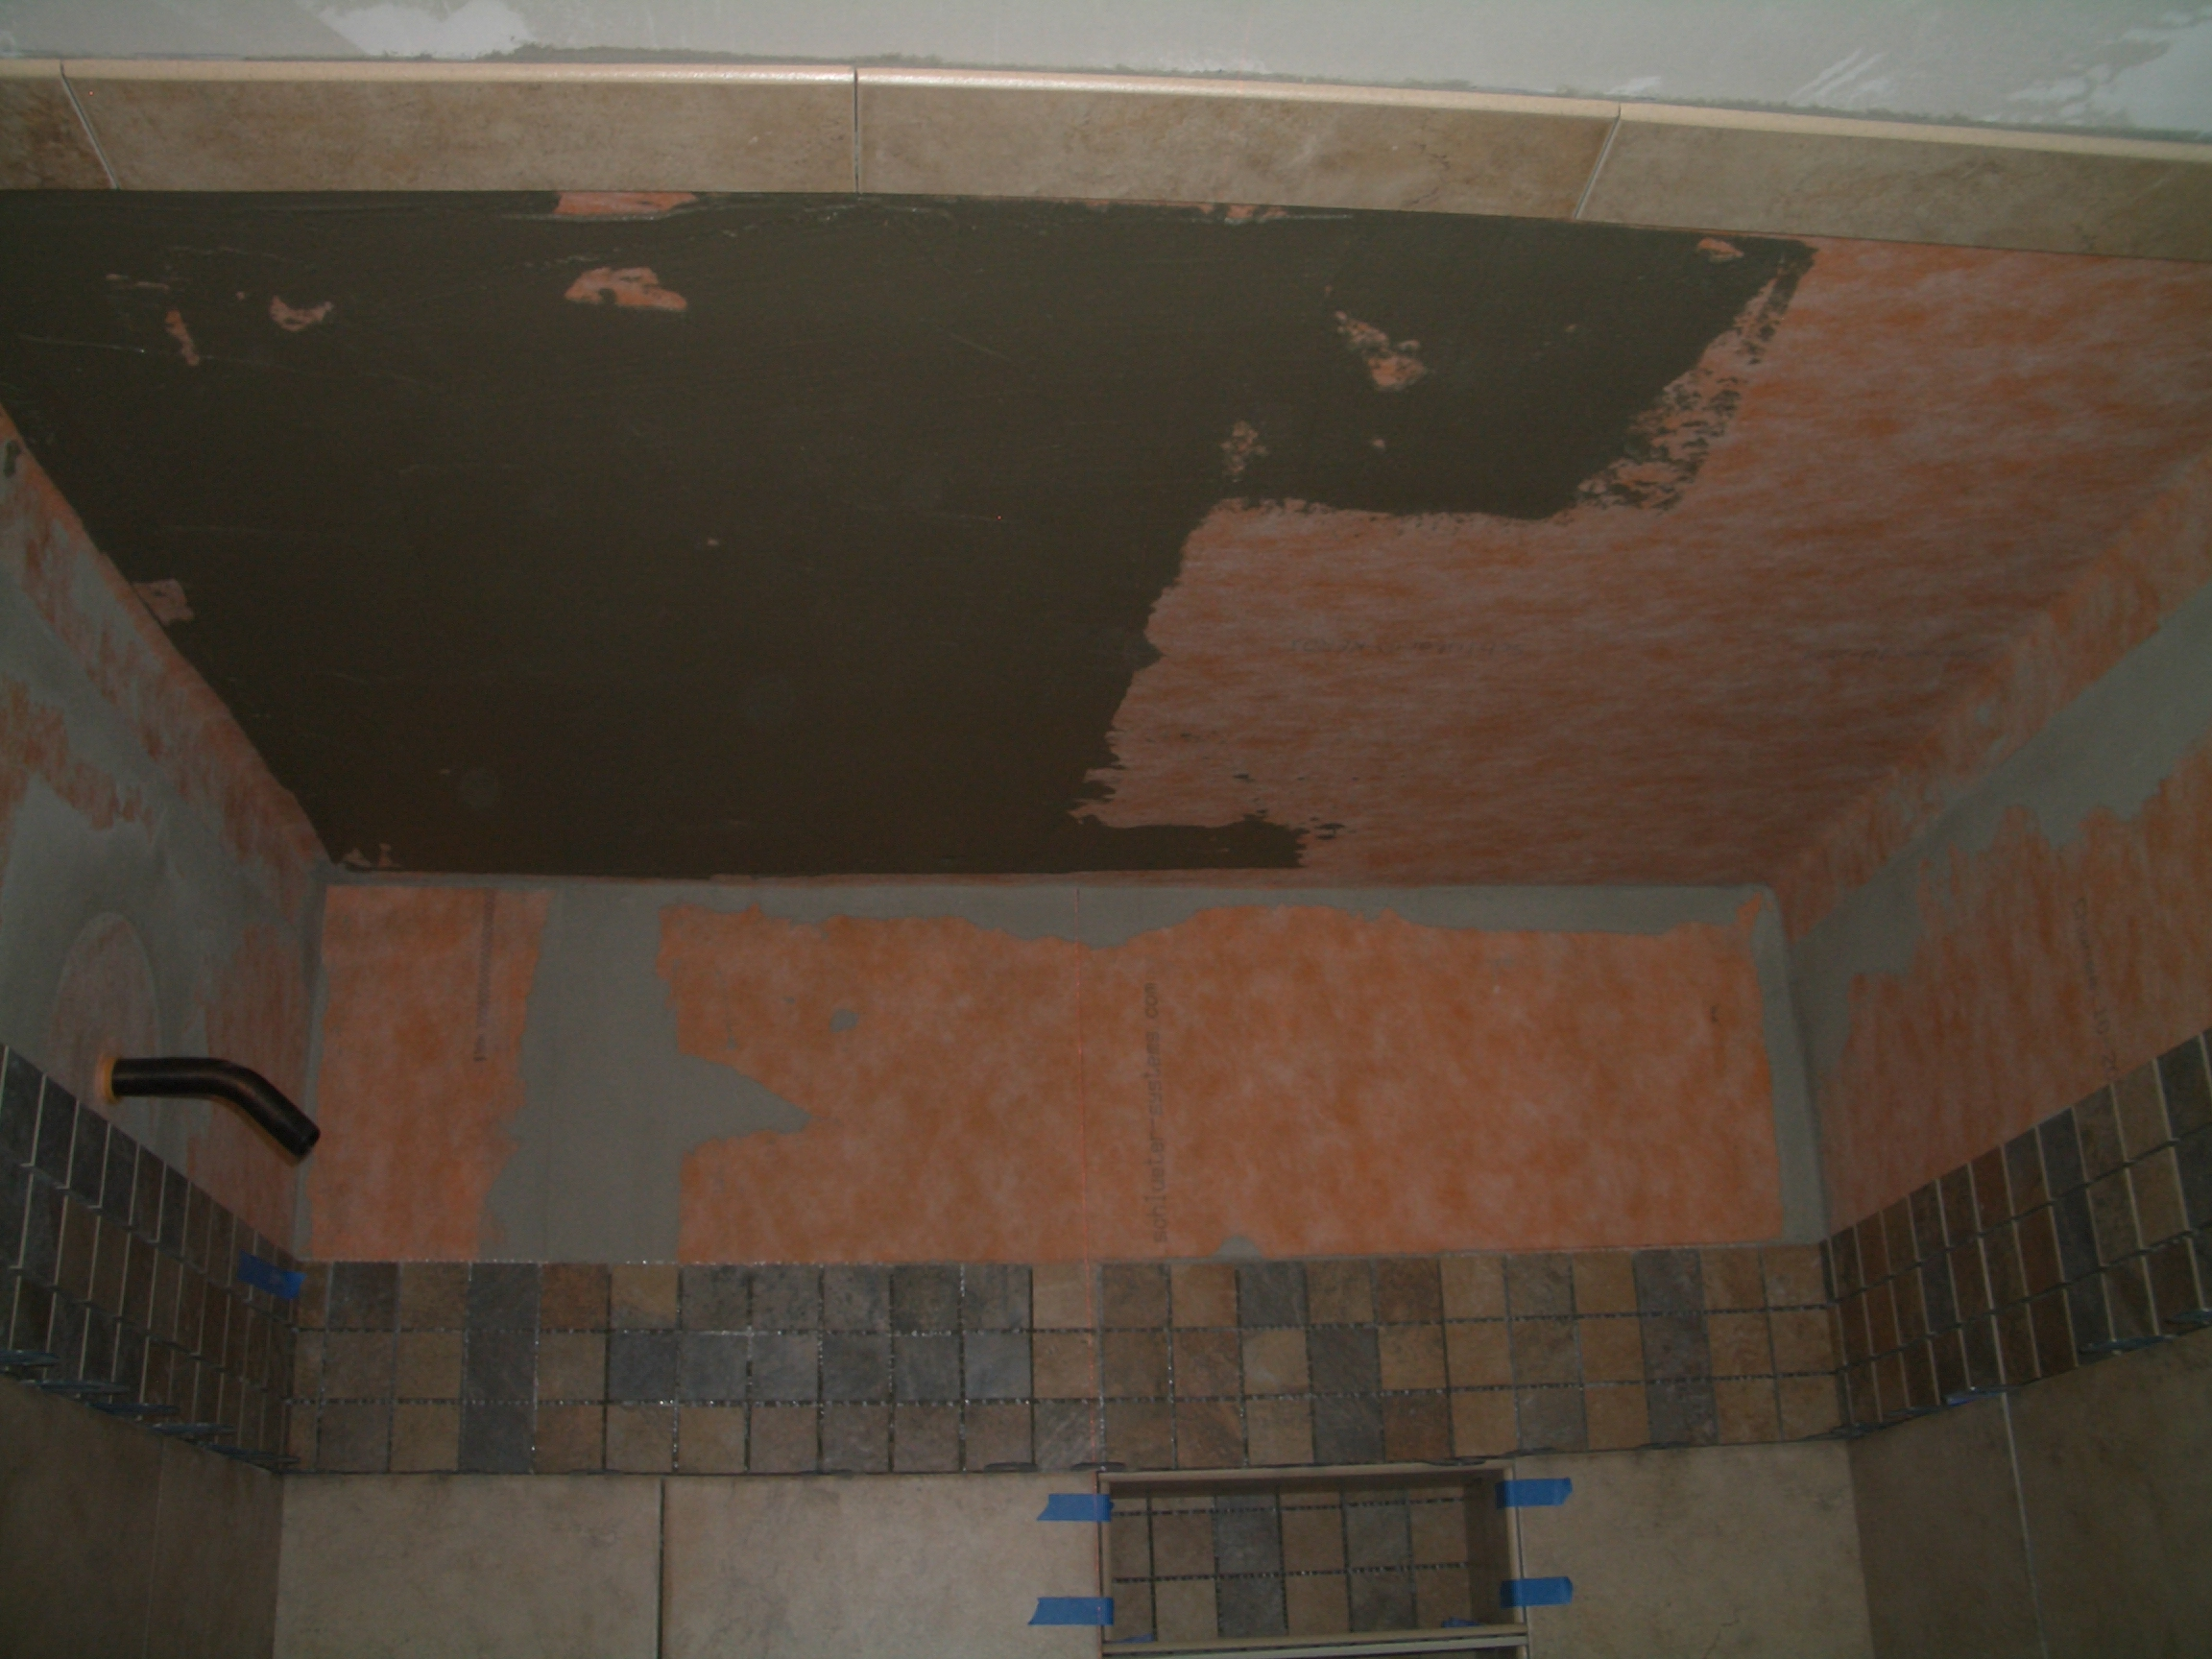 How To Install Tile On A Shower Ceiling - Best thinset for ceramic tile